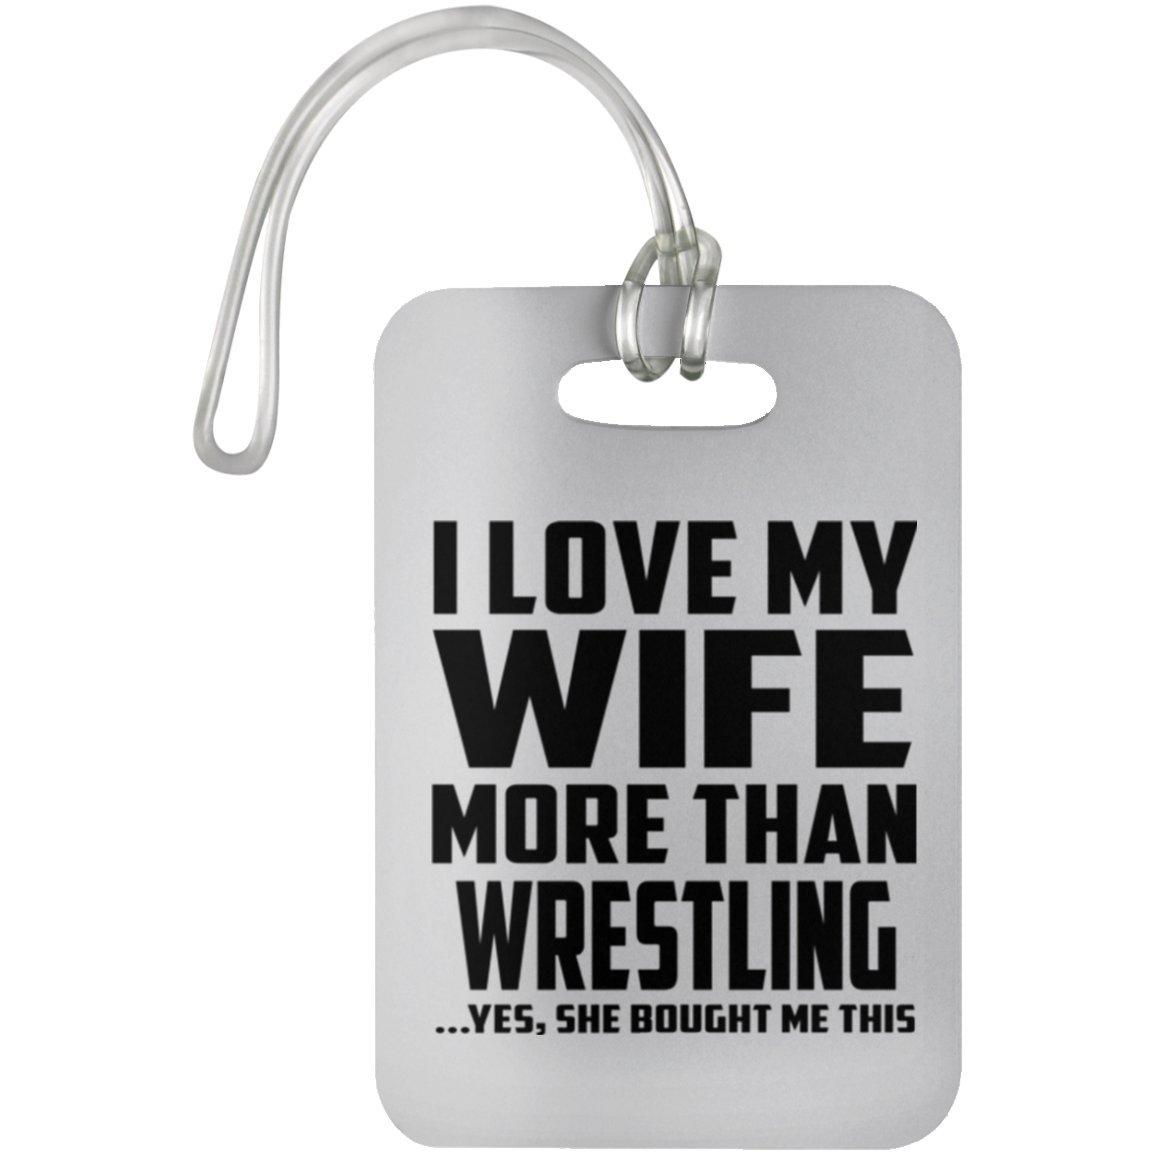 Husband Luggage Tag, I Love My Wife More Than Wrestling .Yes, She Bought Me This - Luggage Tag, Suitcase Bag ID Tag